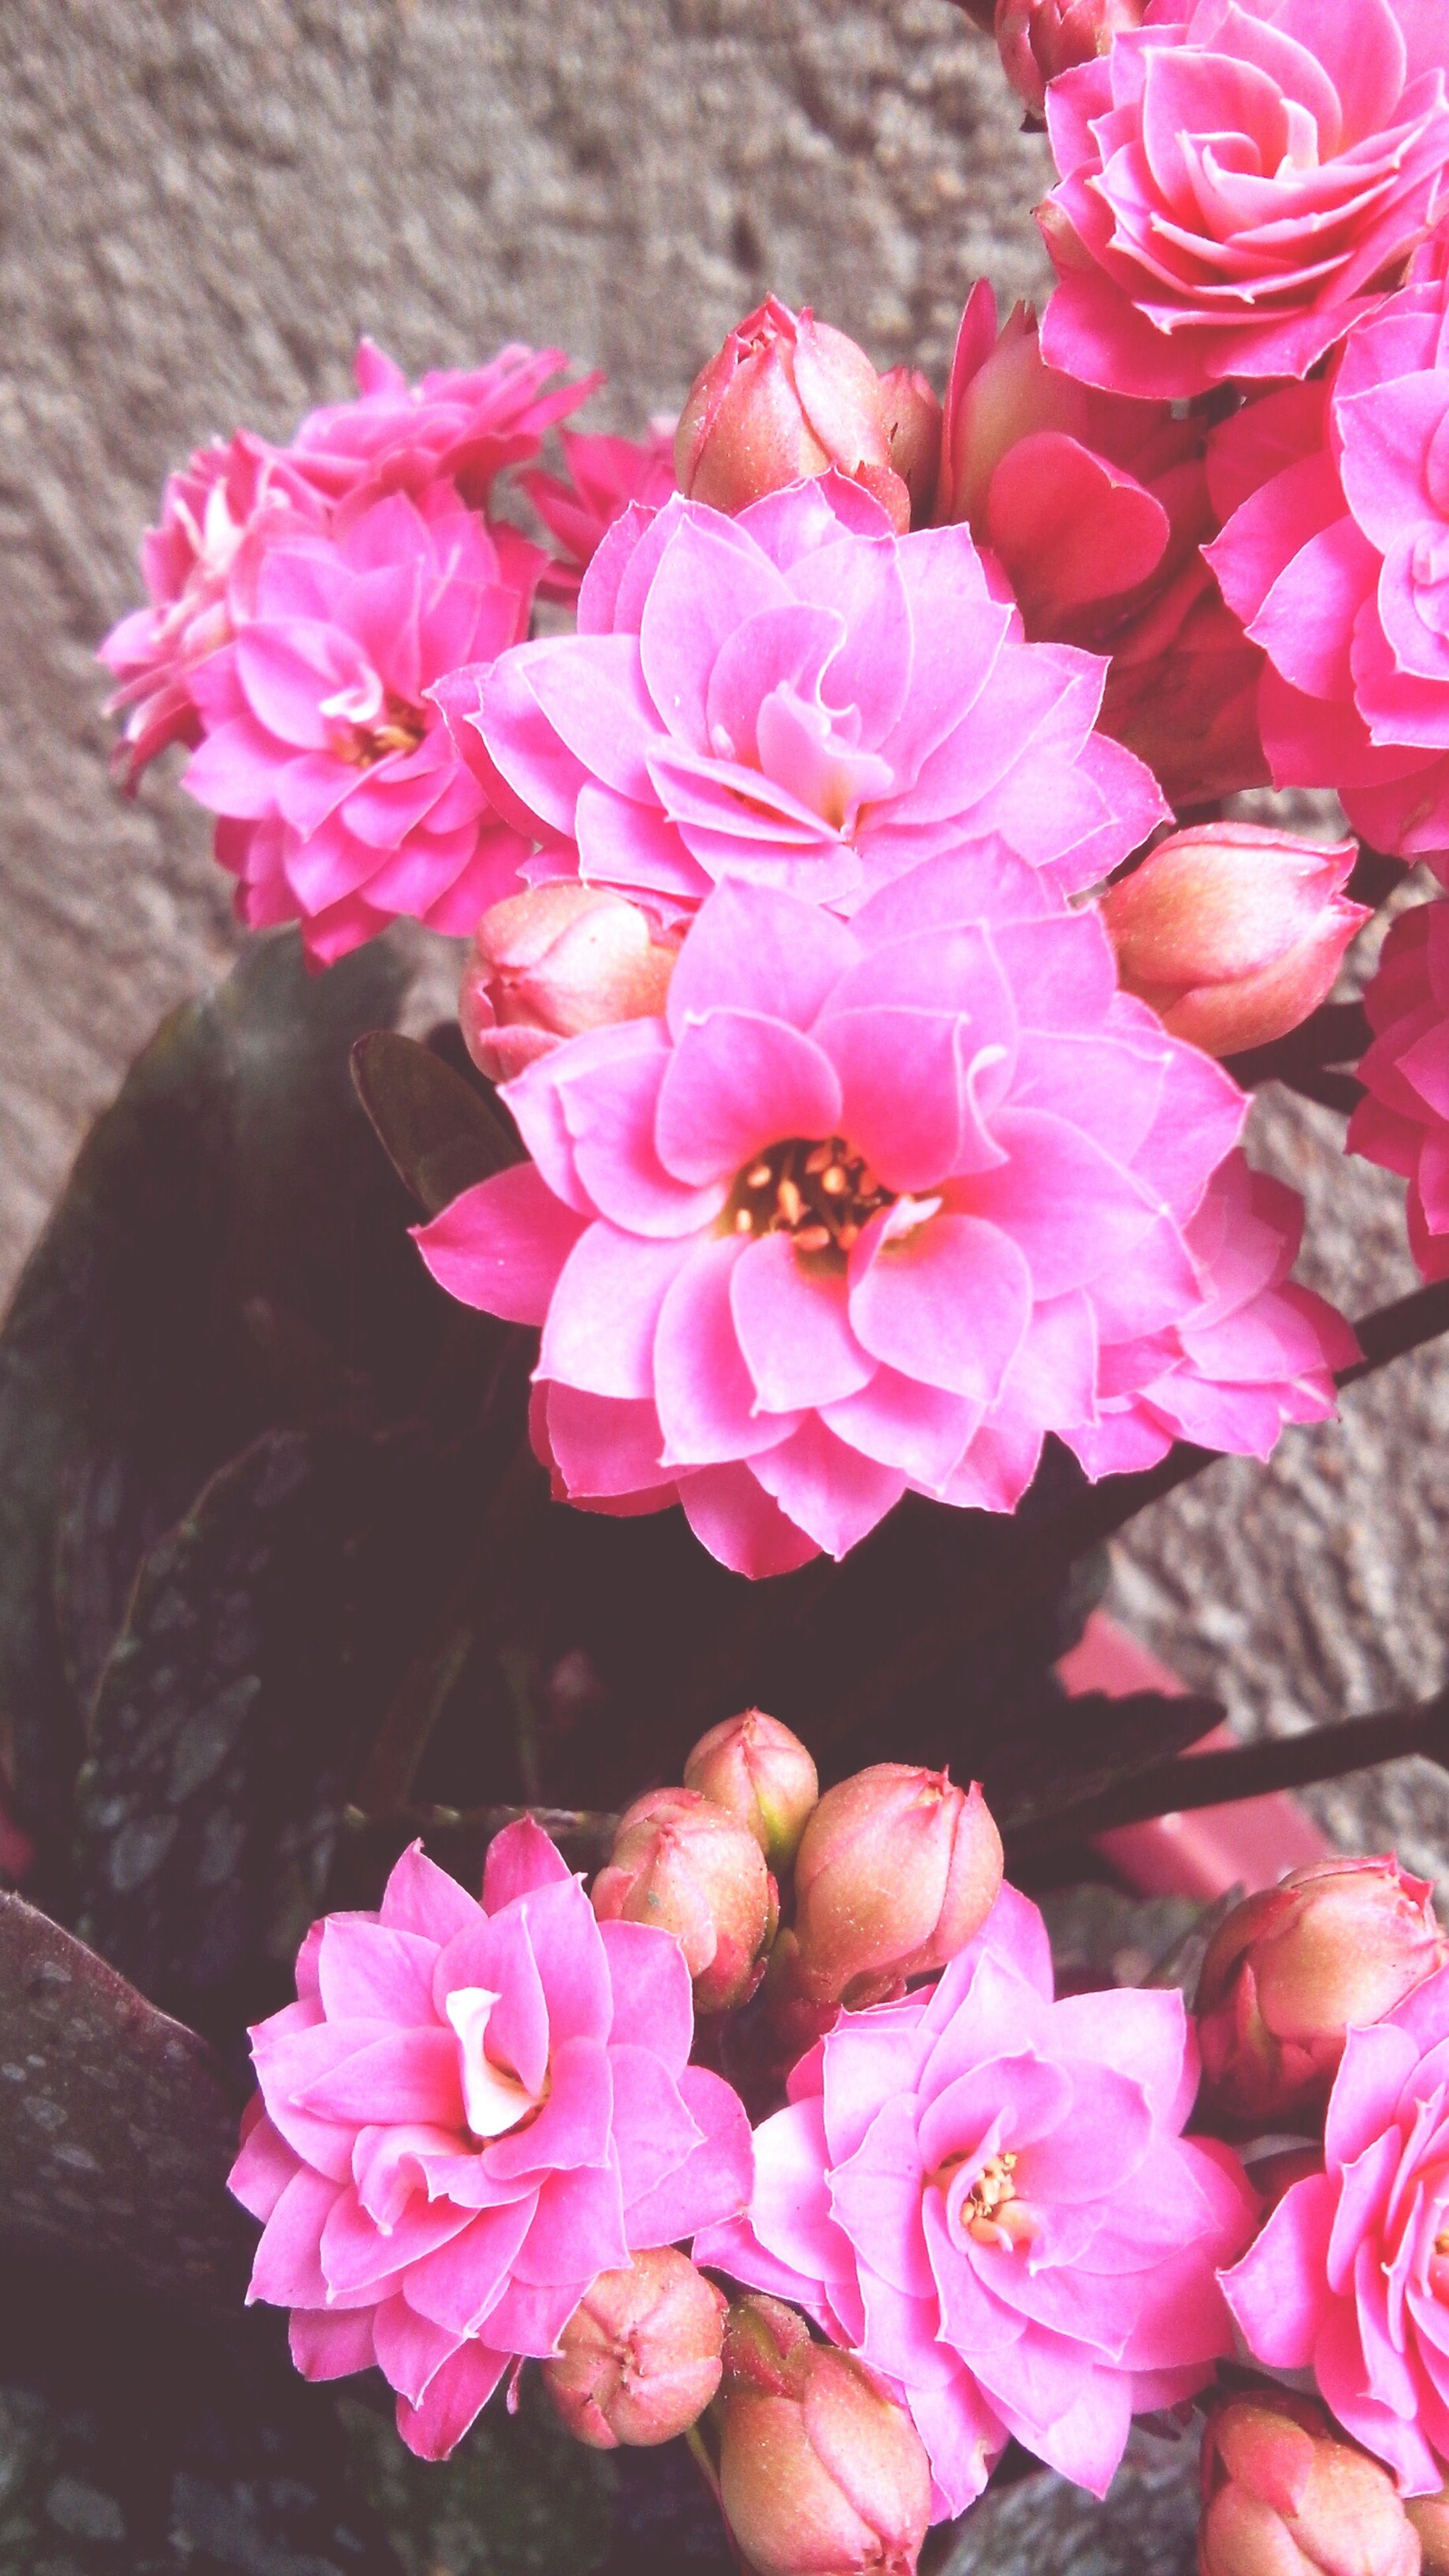 flower, pink color, petal, freshness, fragility, flower head, beauty in nature, close-up, nature, pink, growth, blooming, focus on foreground, rose - flower, indoors, plant, bunch of flowers, in bloom, no people, high angle view